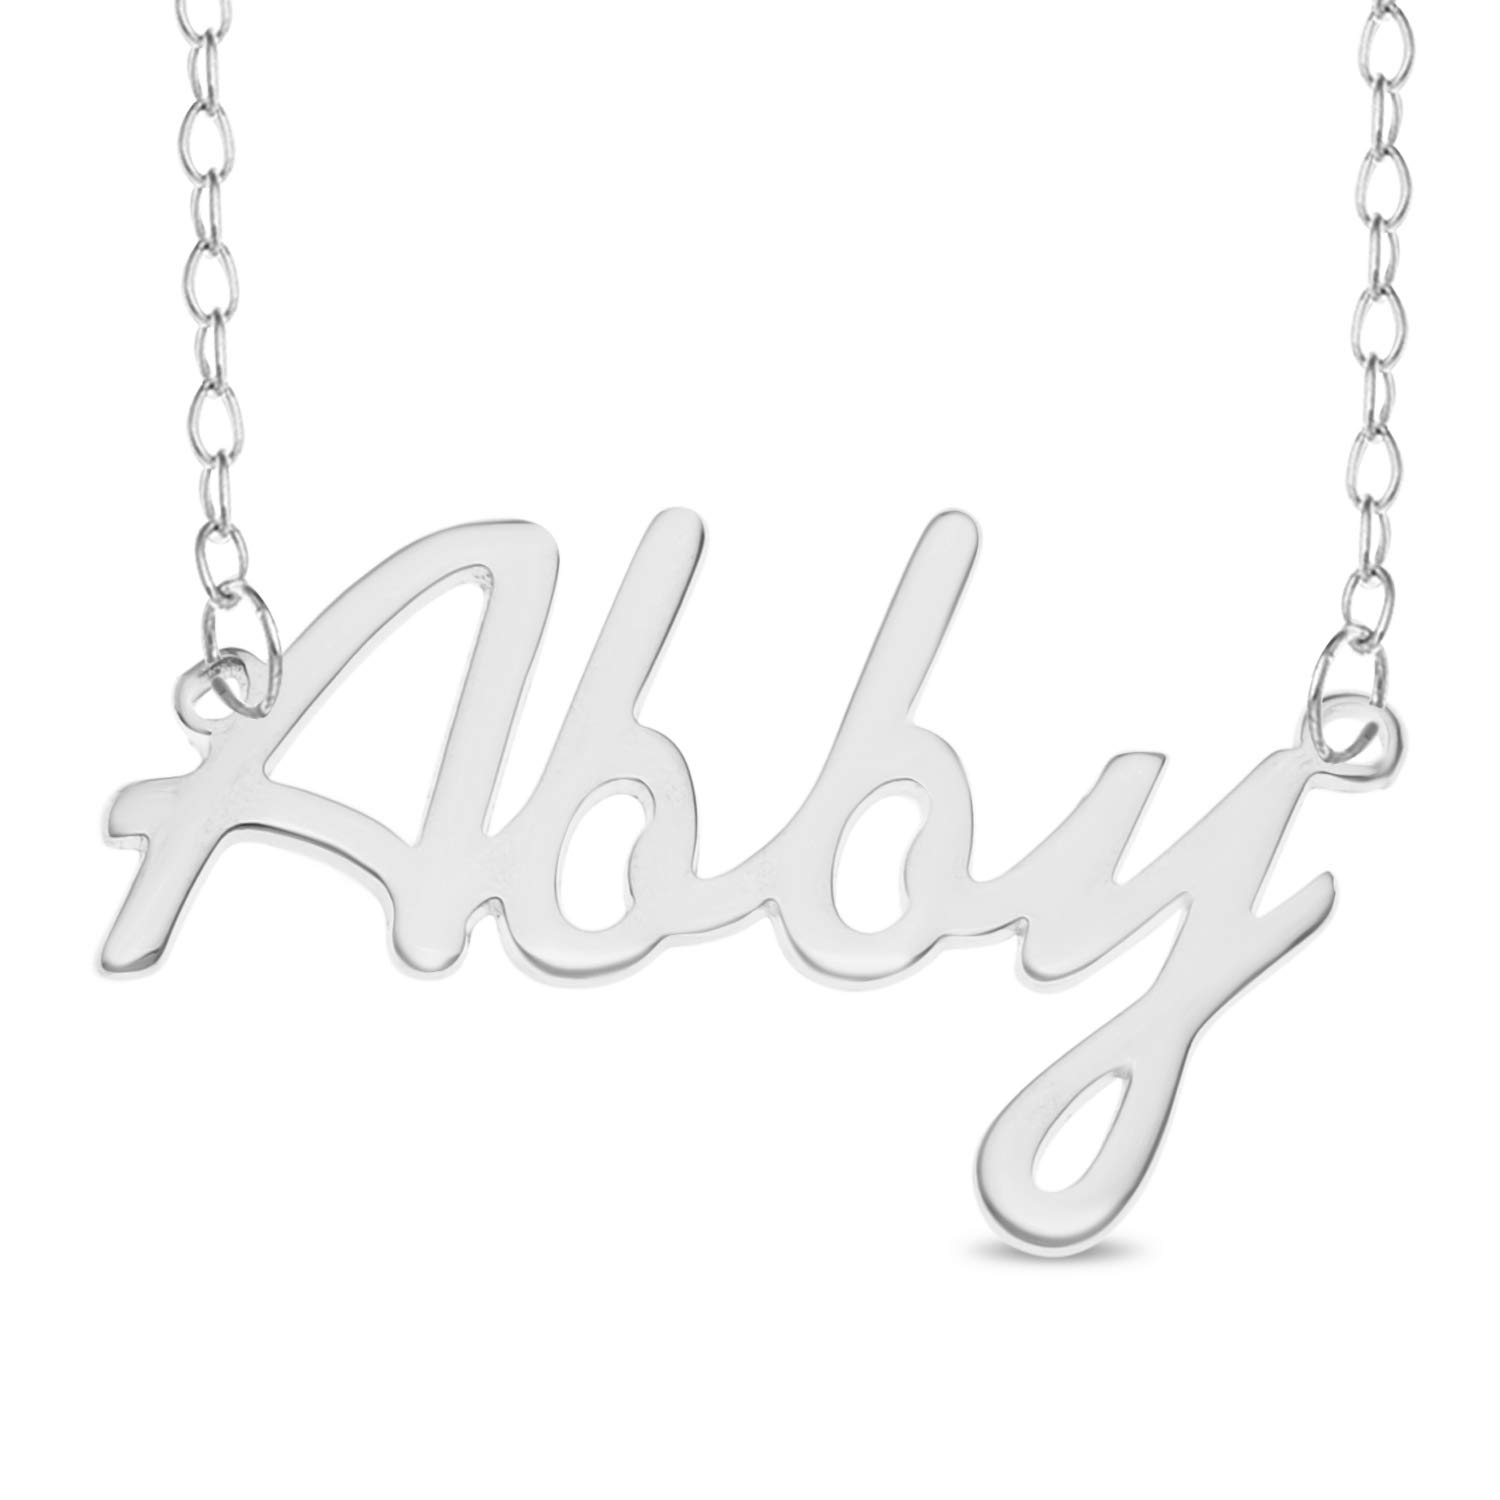 2891632532dad ABBY Name Necklace 925 Sterling Silver Box Chain Pendant Gift + ...